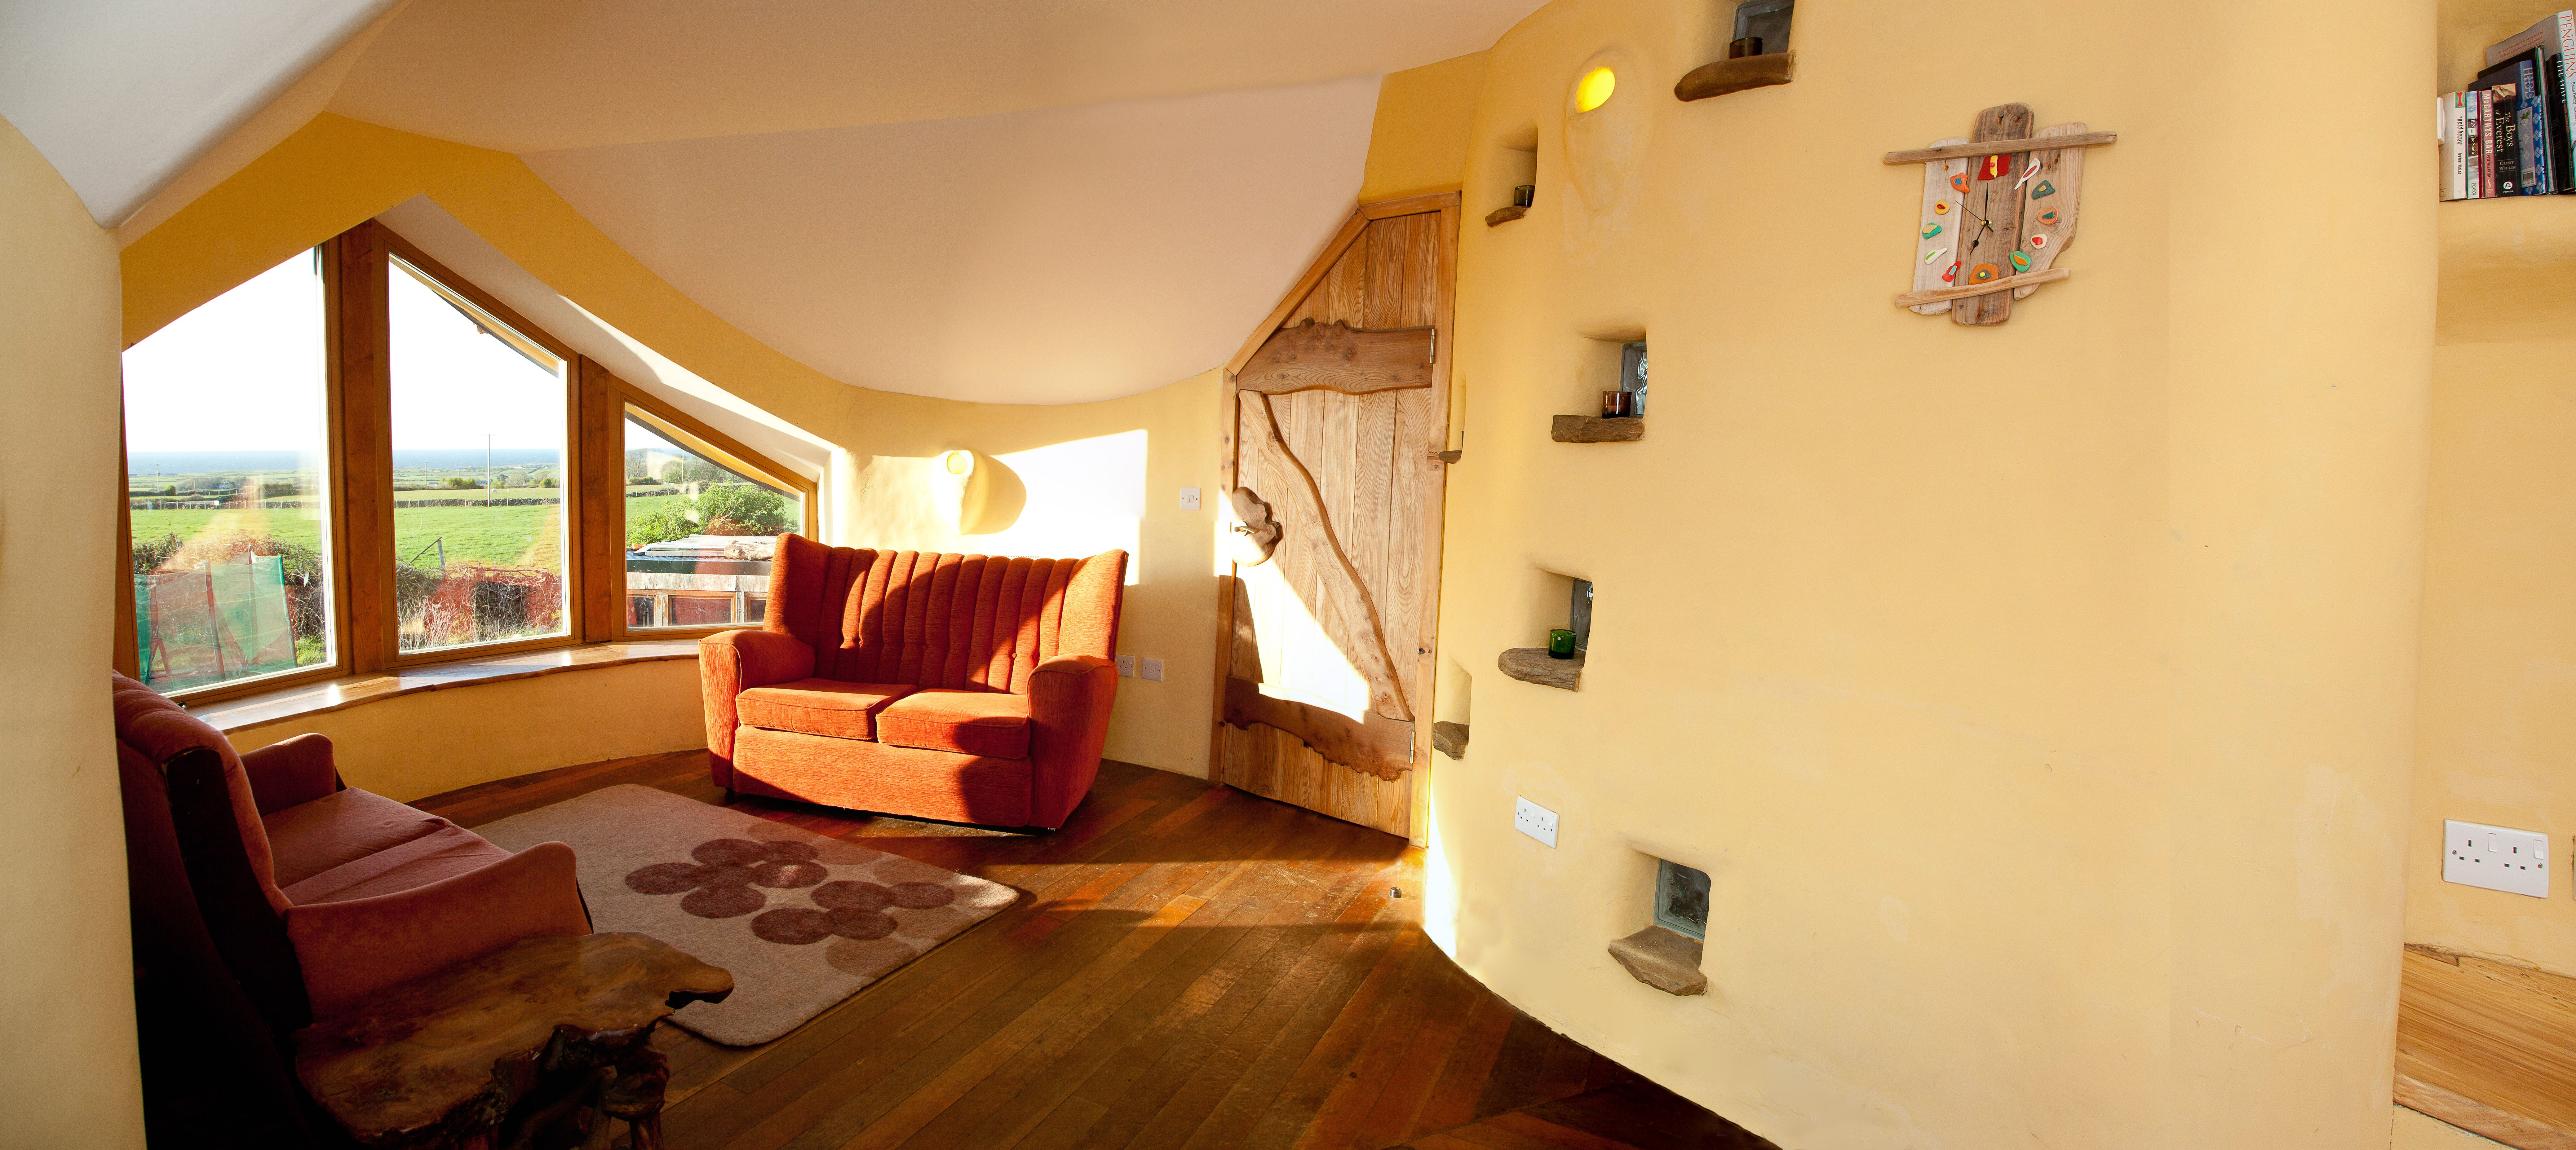 The Sunset Lounge In The Mud And Wood House   The Curved Walls Are All Made  From Cob   A Mixture Or Mud And Straw.